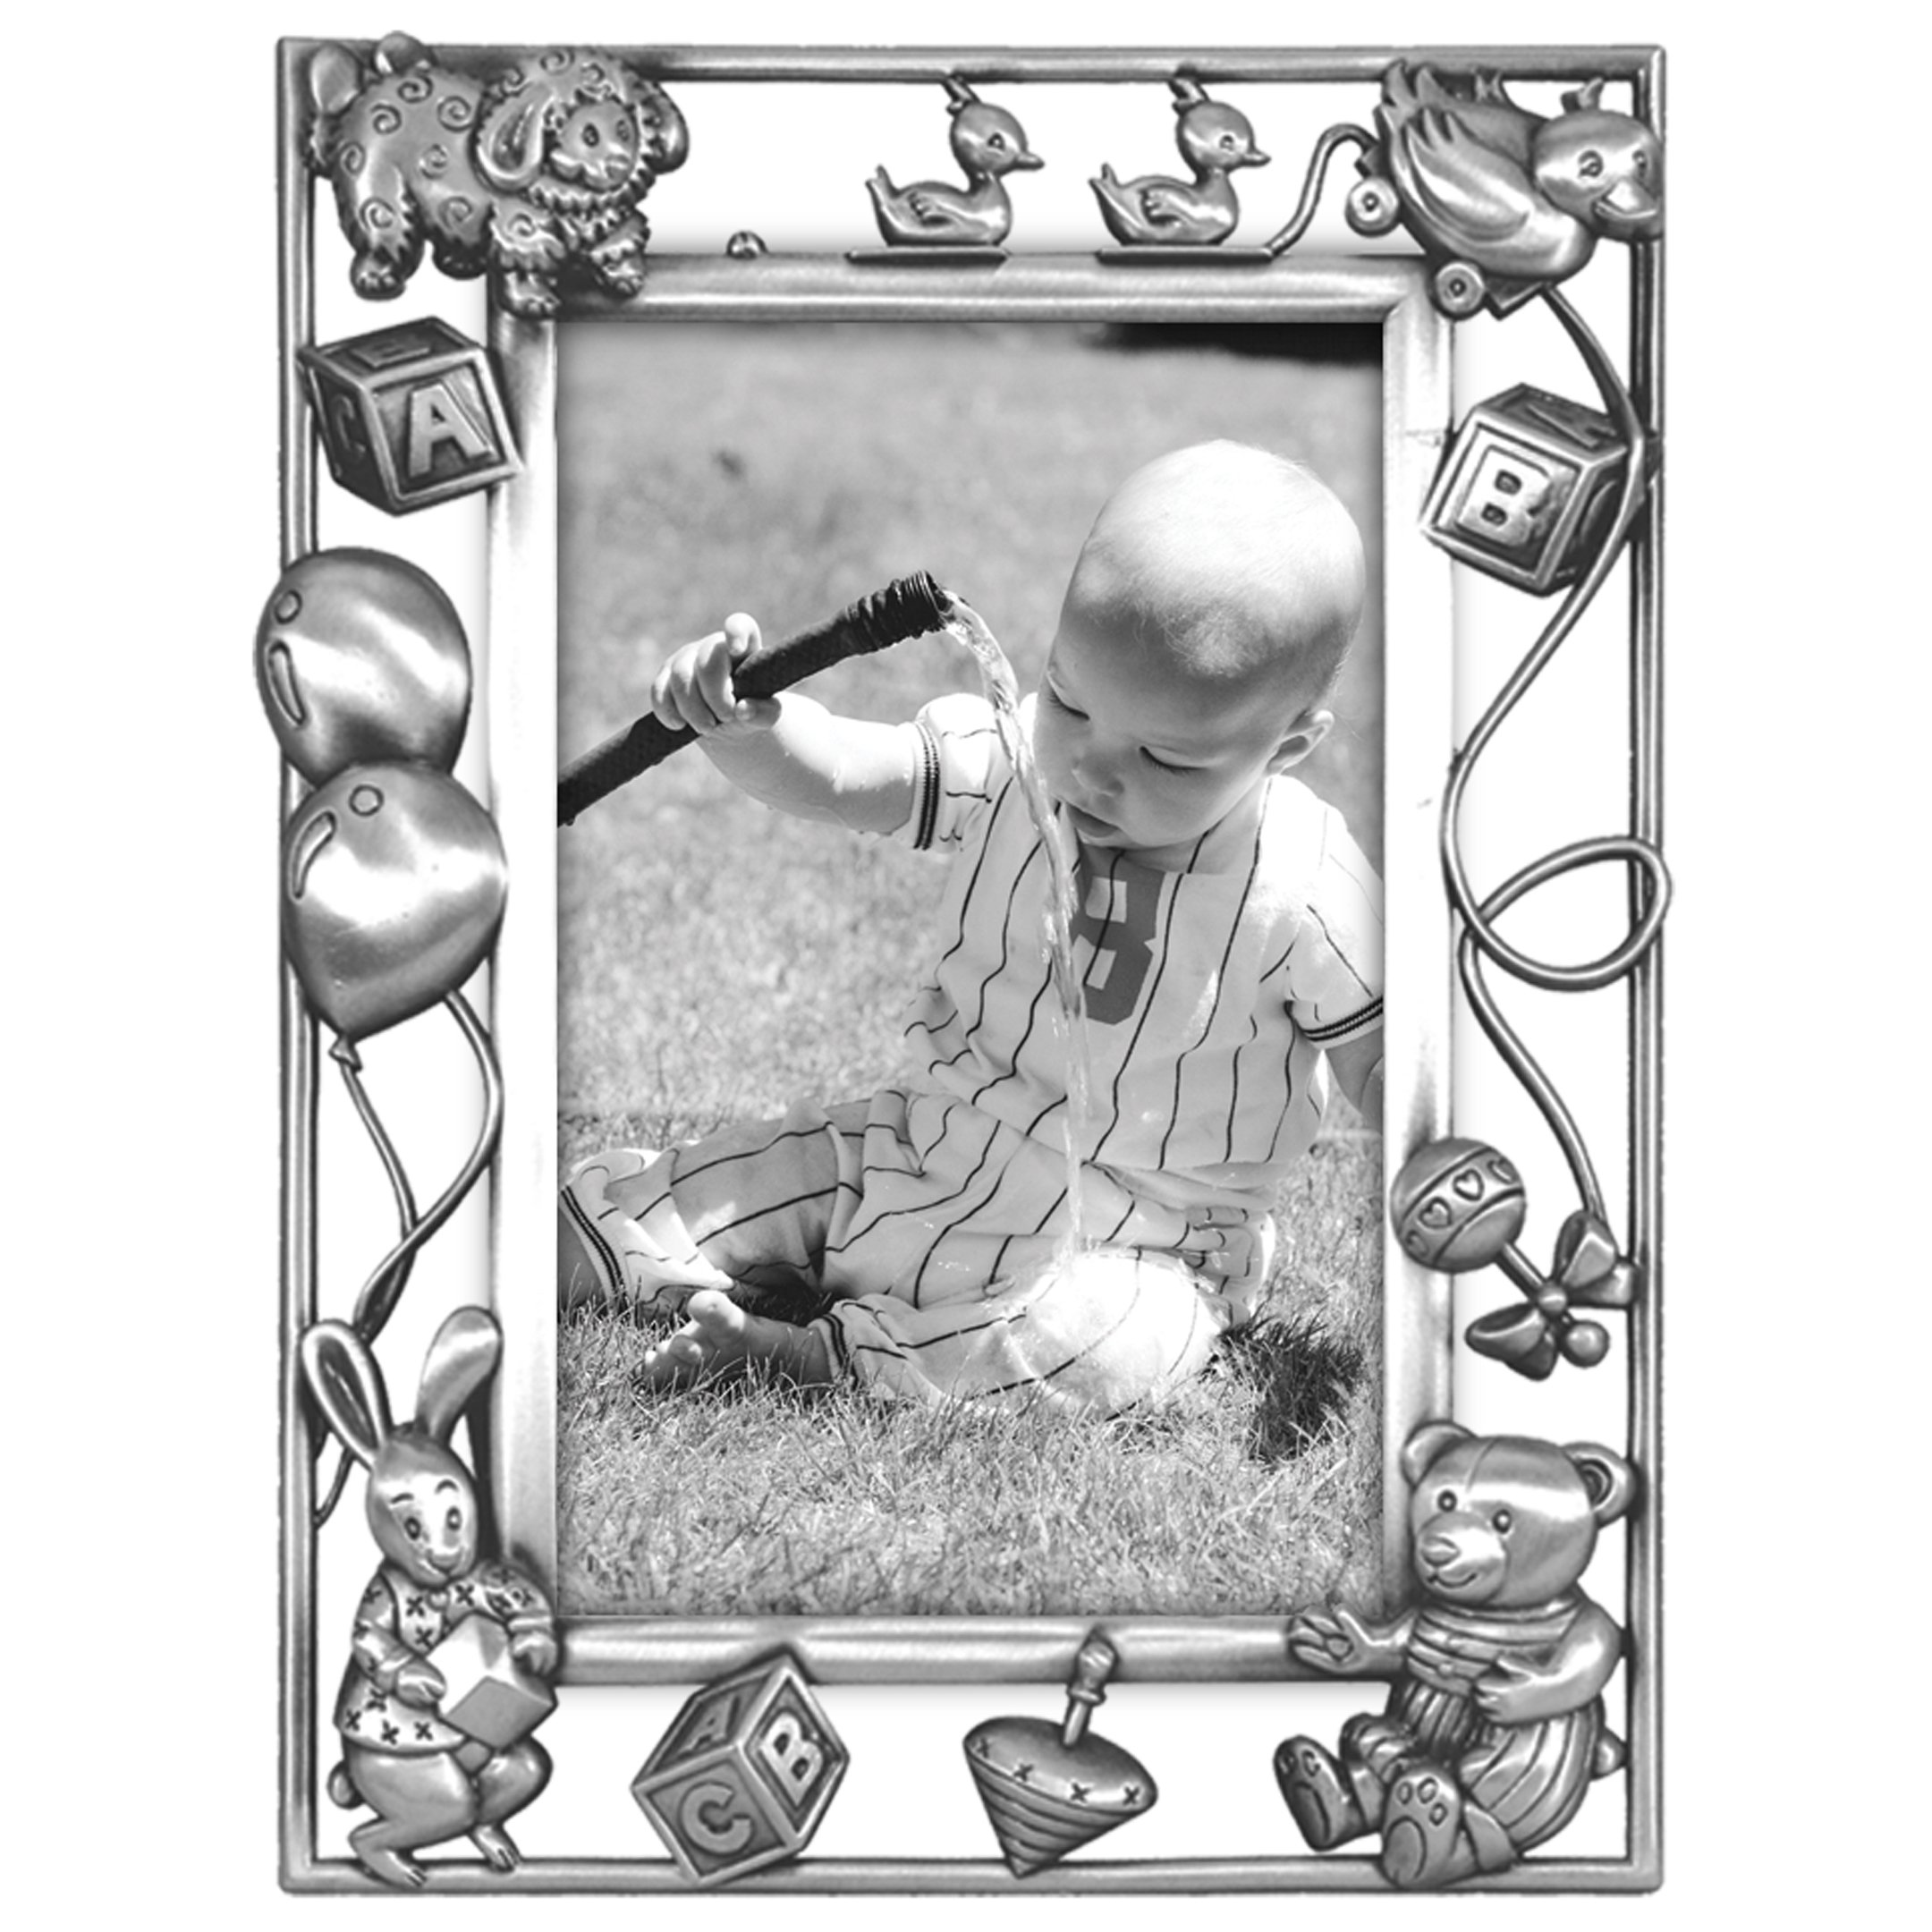 Malden International Designs Nursery Parade Picture Frame, 4x6, Silver